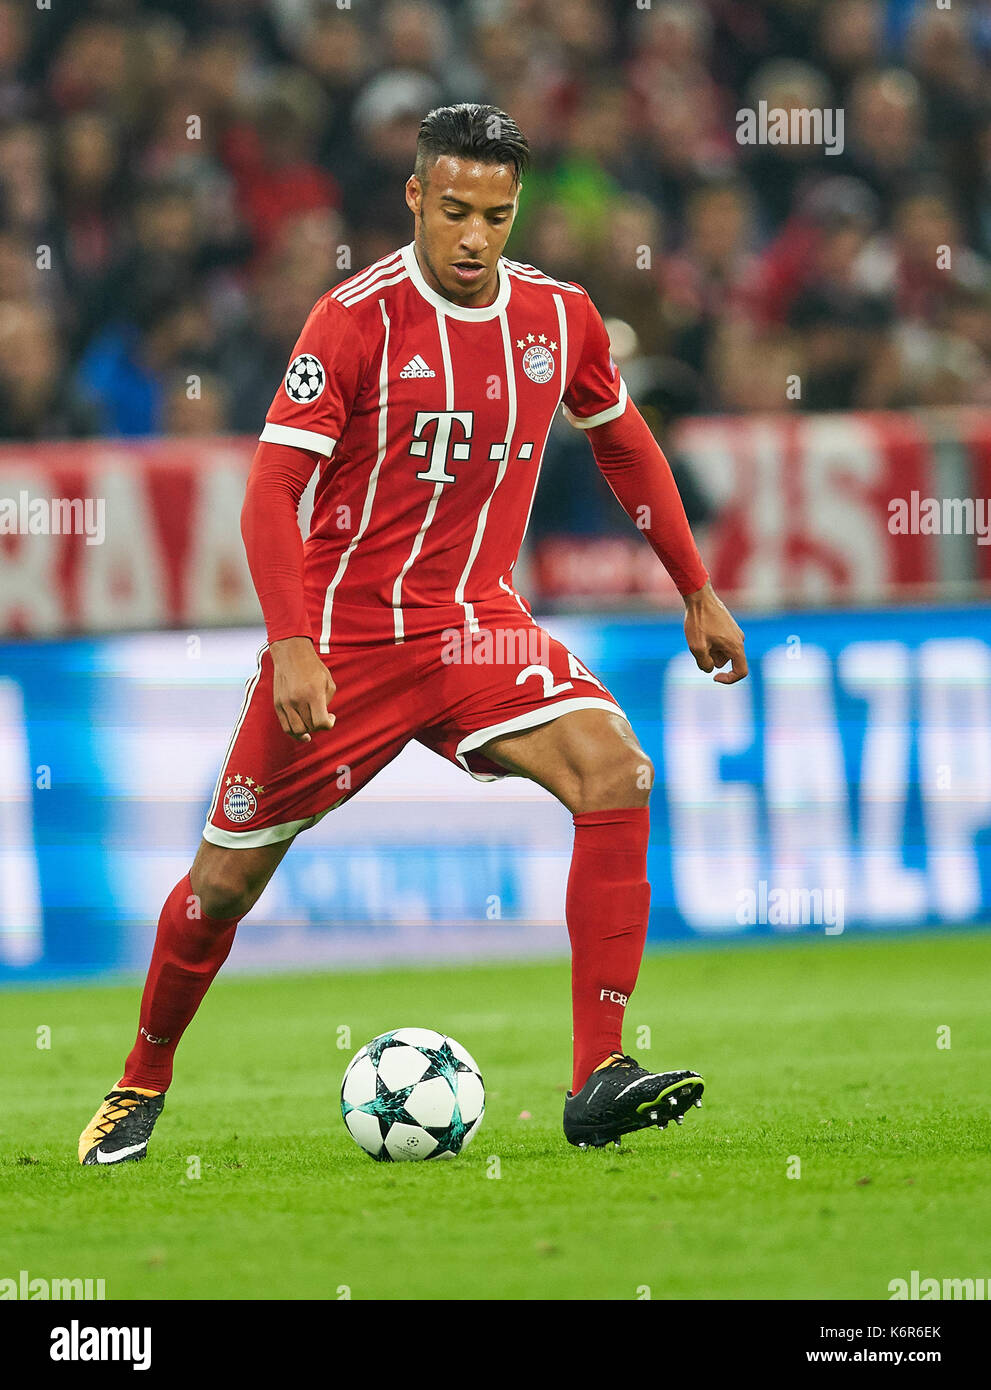 Corentin Tolisso High Resolution Stock Photography and Images - Alamy